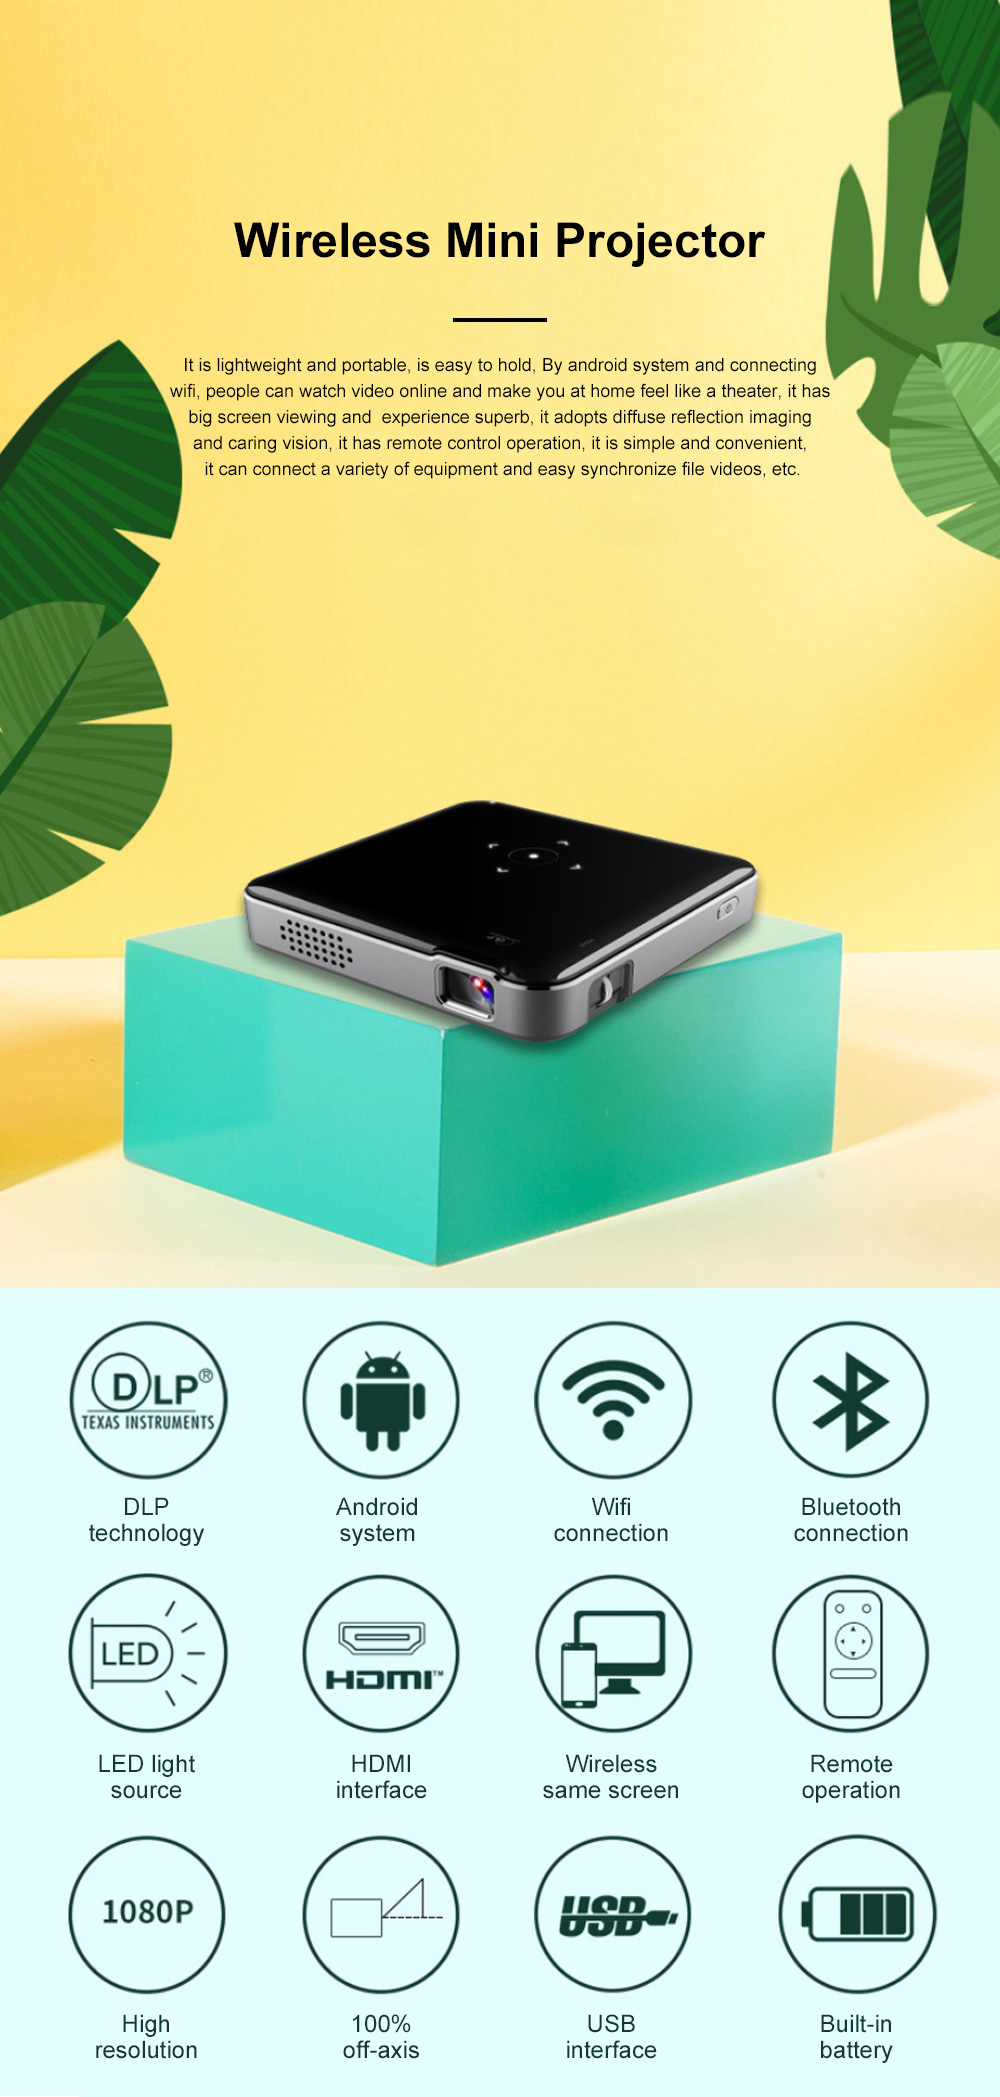 S80 Android Smart Projector HD 1080P 854x480 Wireless Miracast Airplay Wifi Display Smartphone Mini Pocket Projector 0